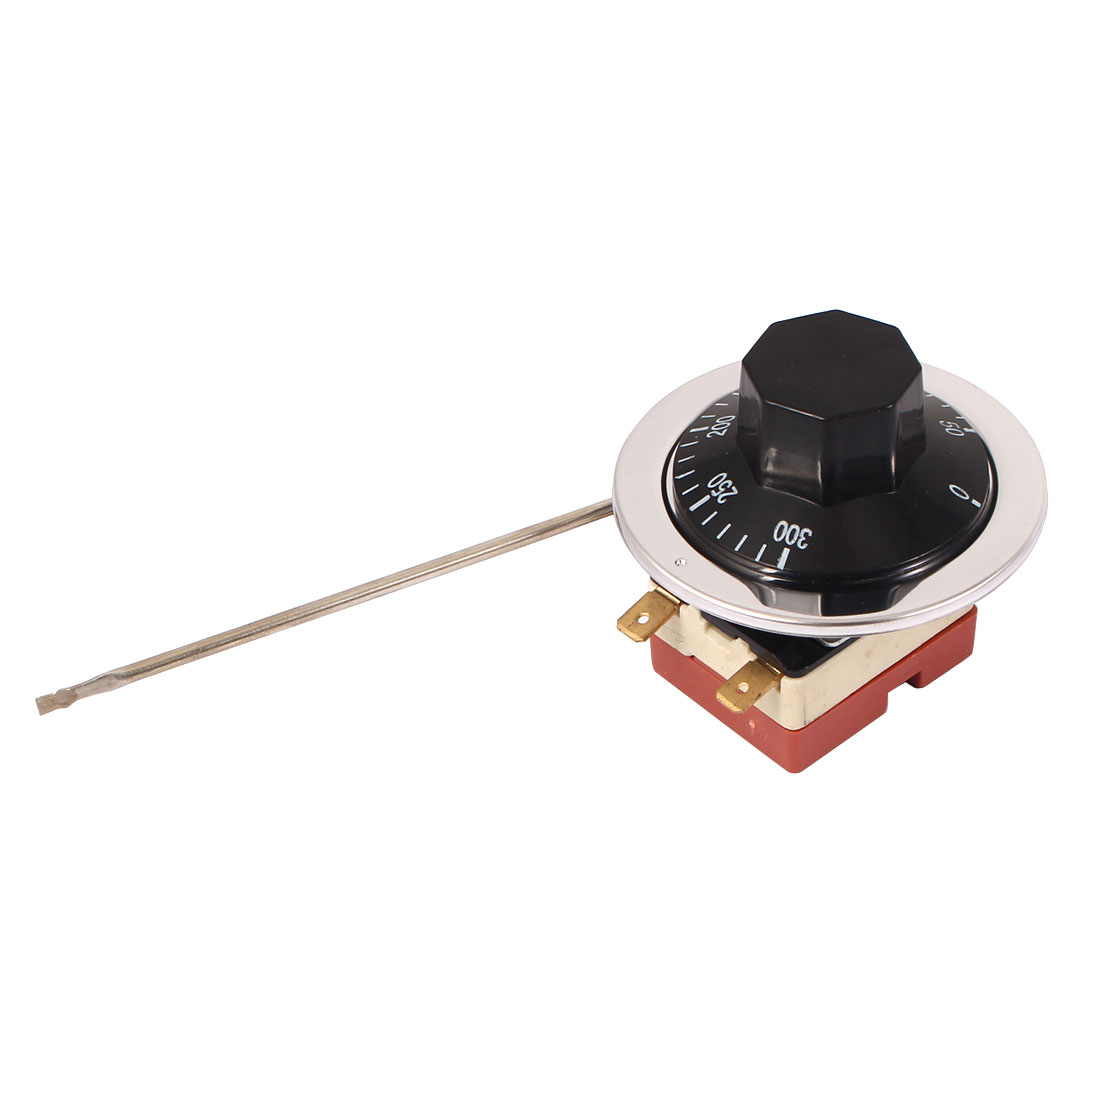 AC 220V-250V 16A 50-300 Celsius Detection Temperature Control Switch Thermostat